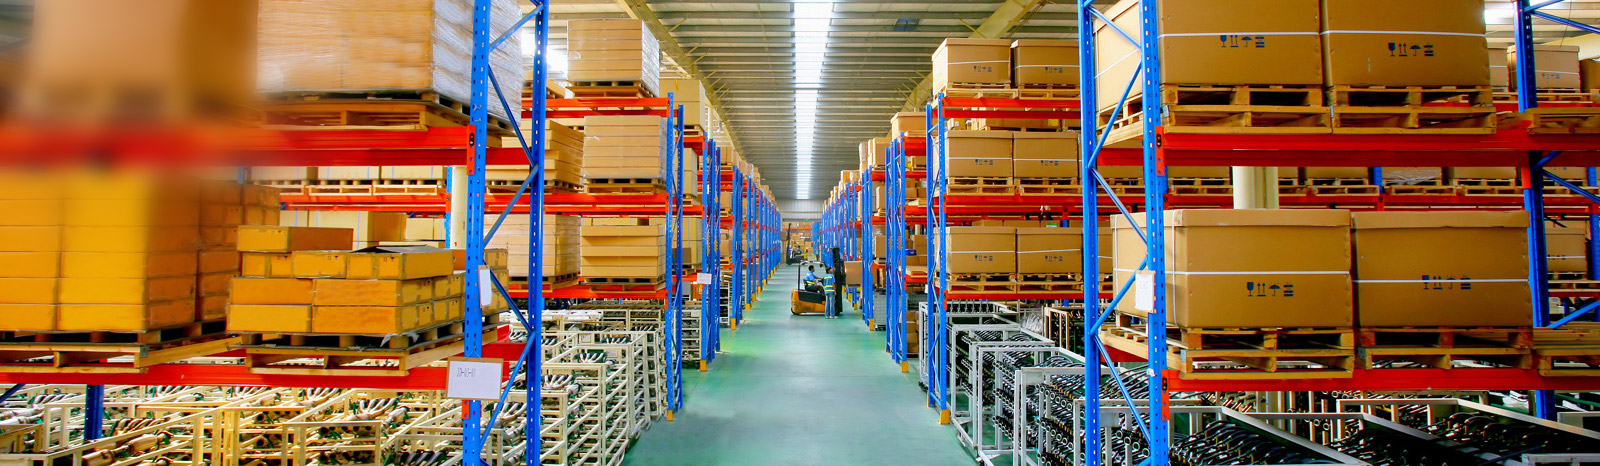 warehousing services in india